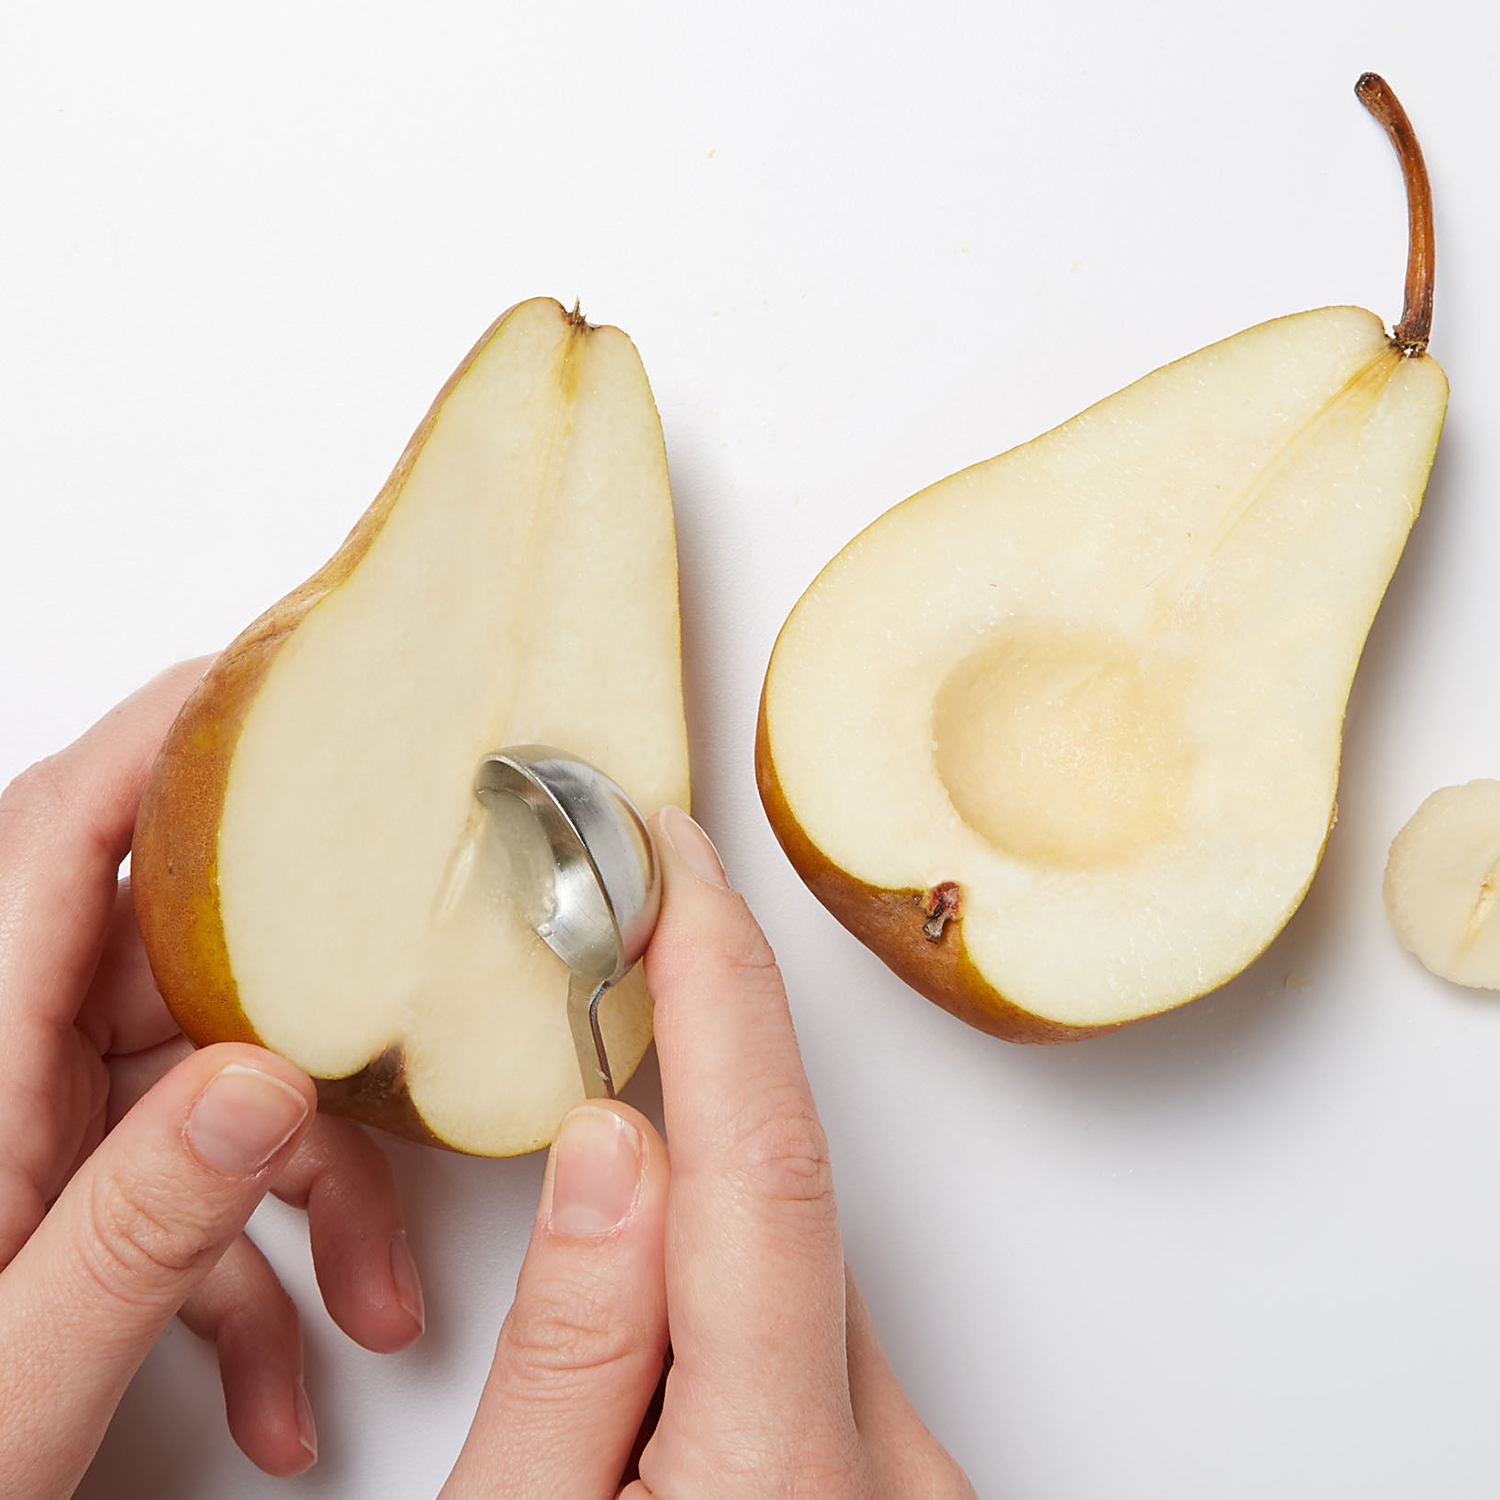 Scooping pear with teaspoon